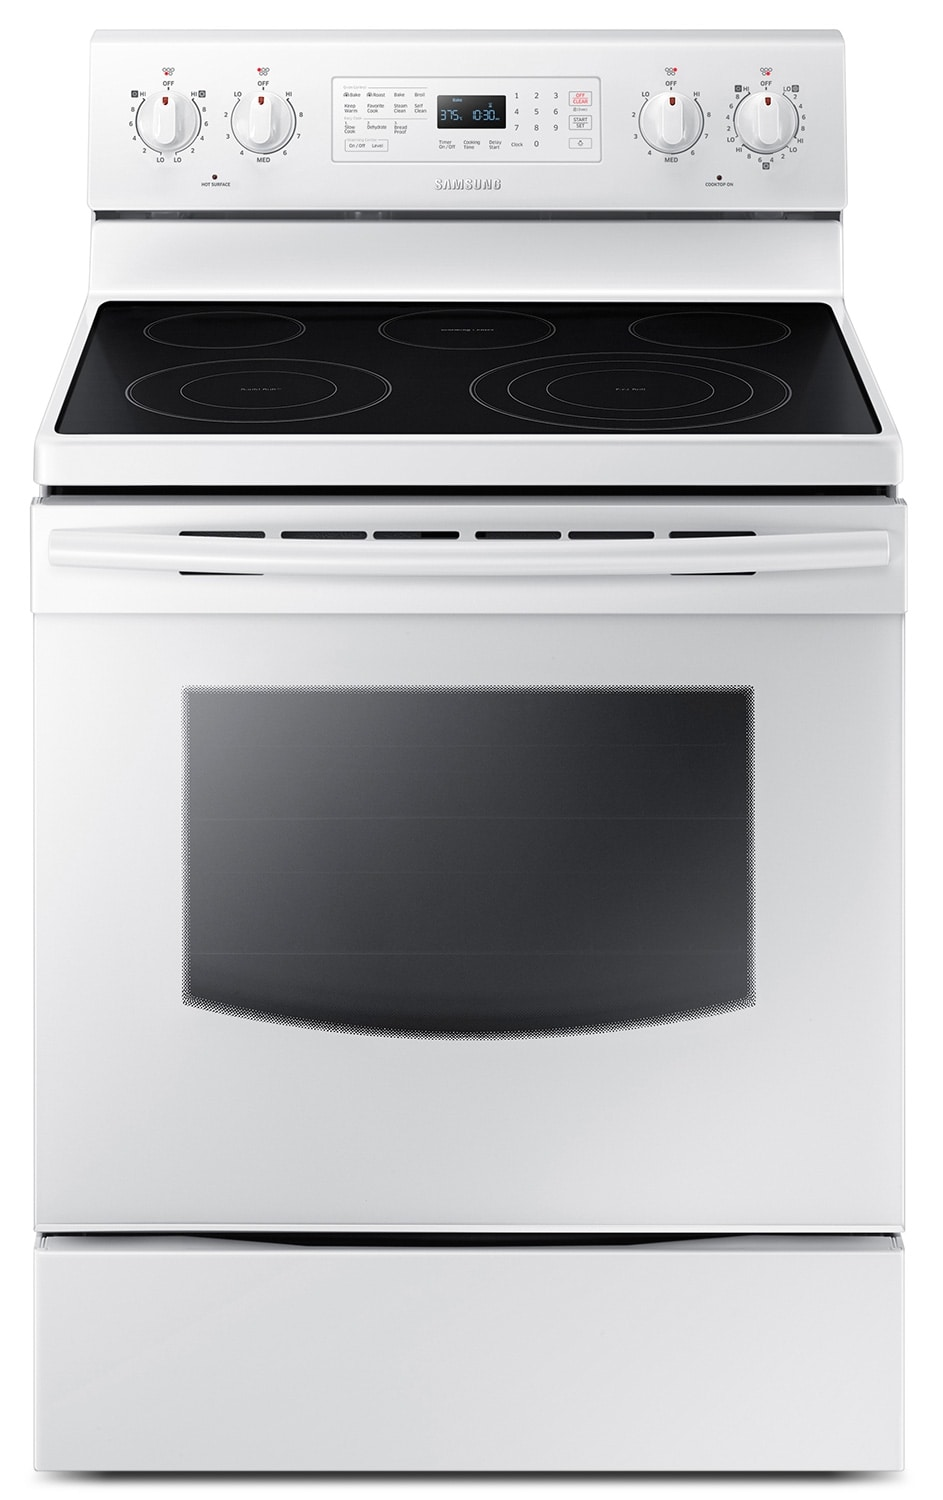 Cooking Products - Samsung Freestanding Self-Clean Electric Range - White